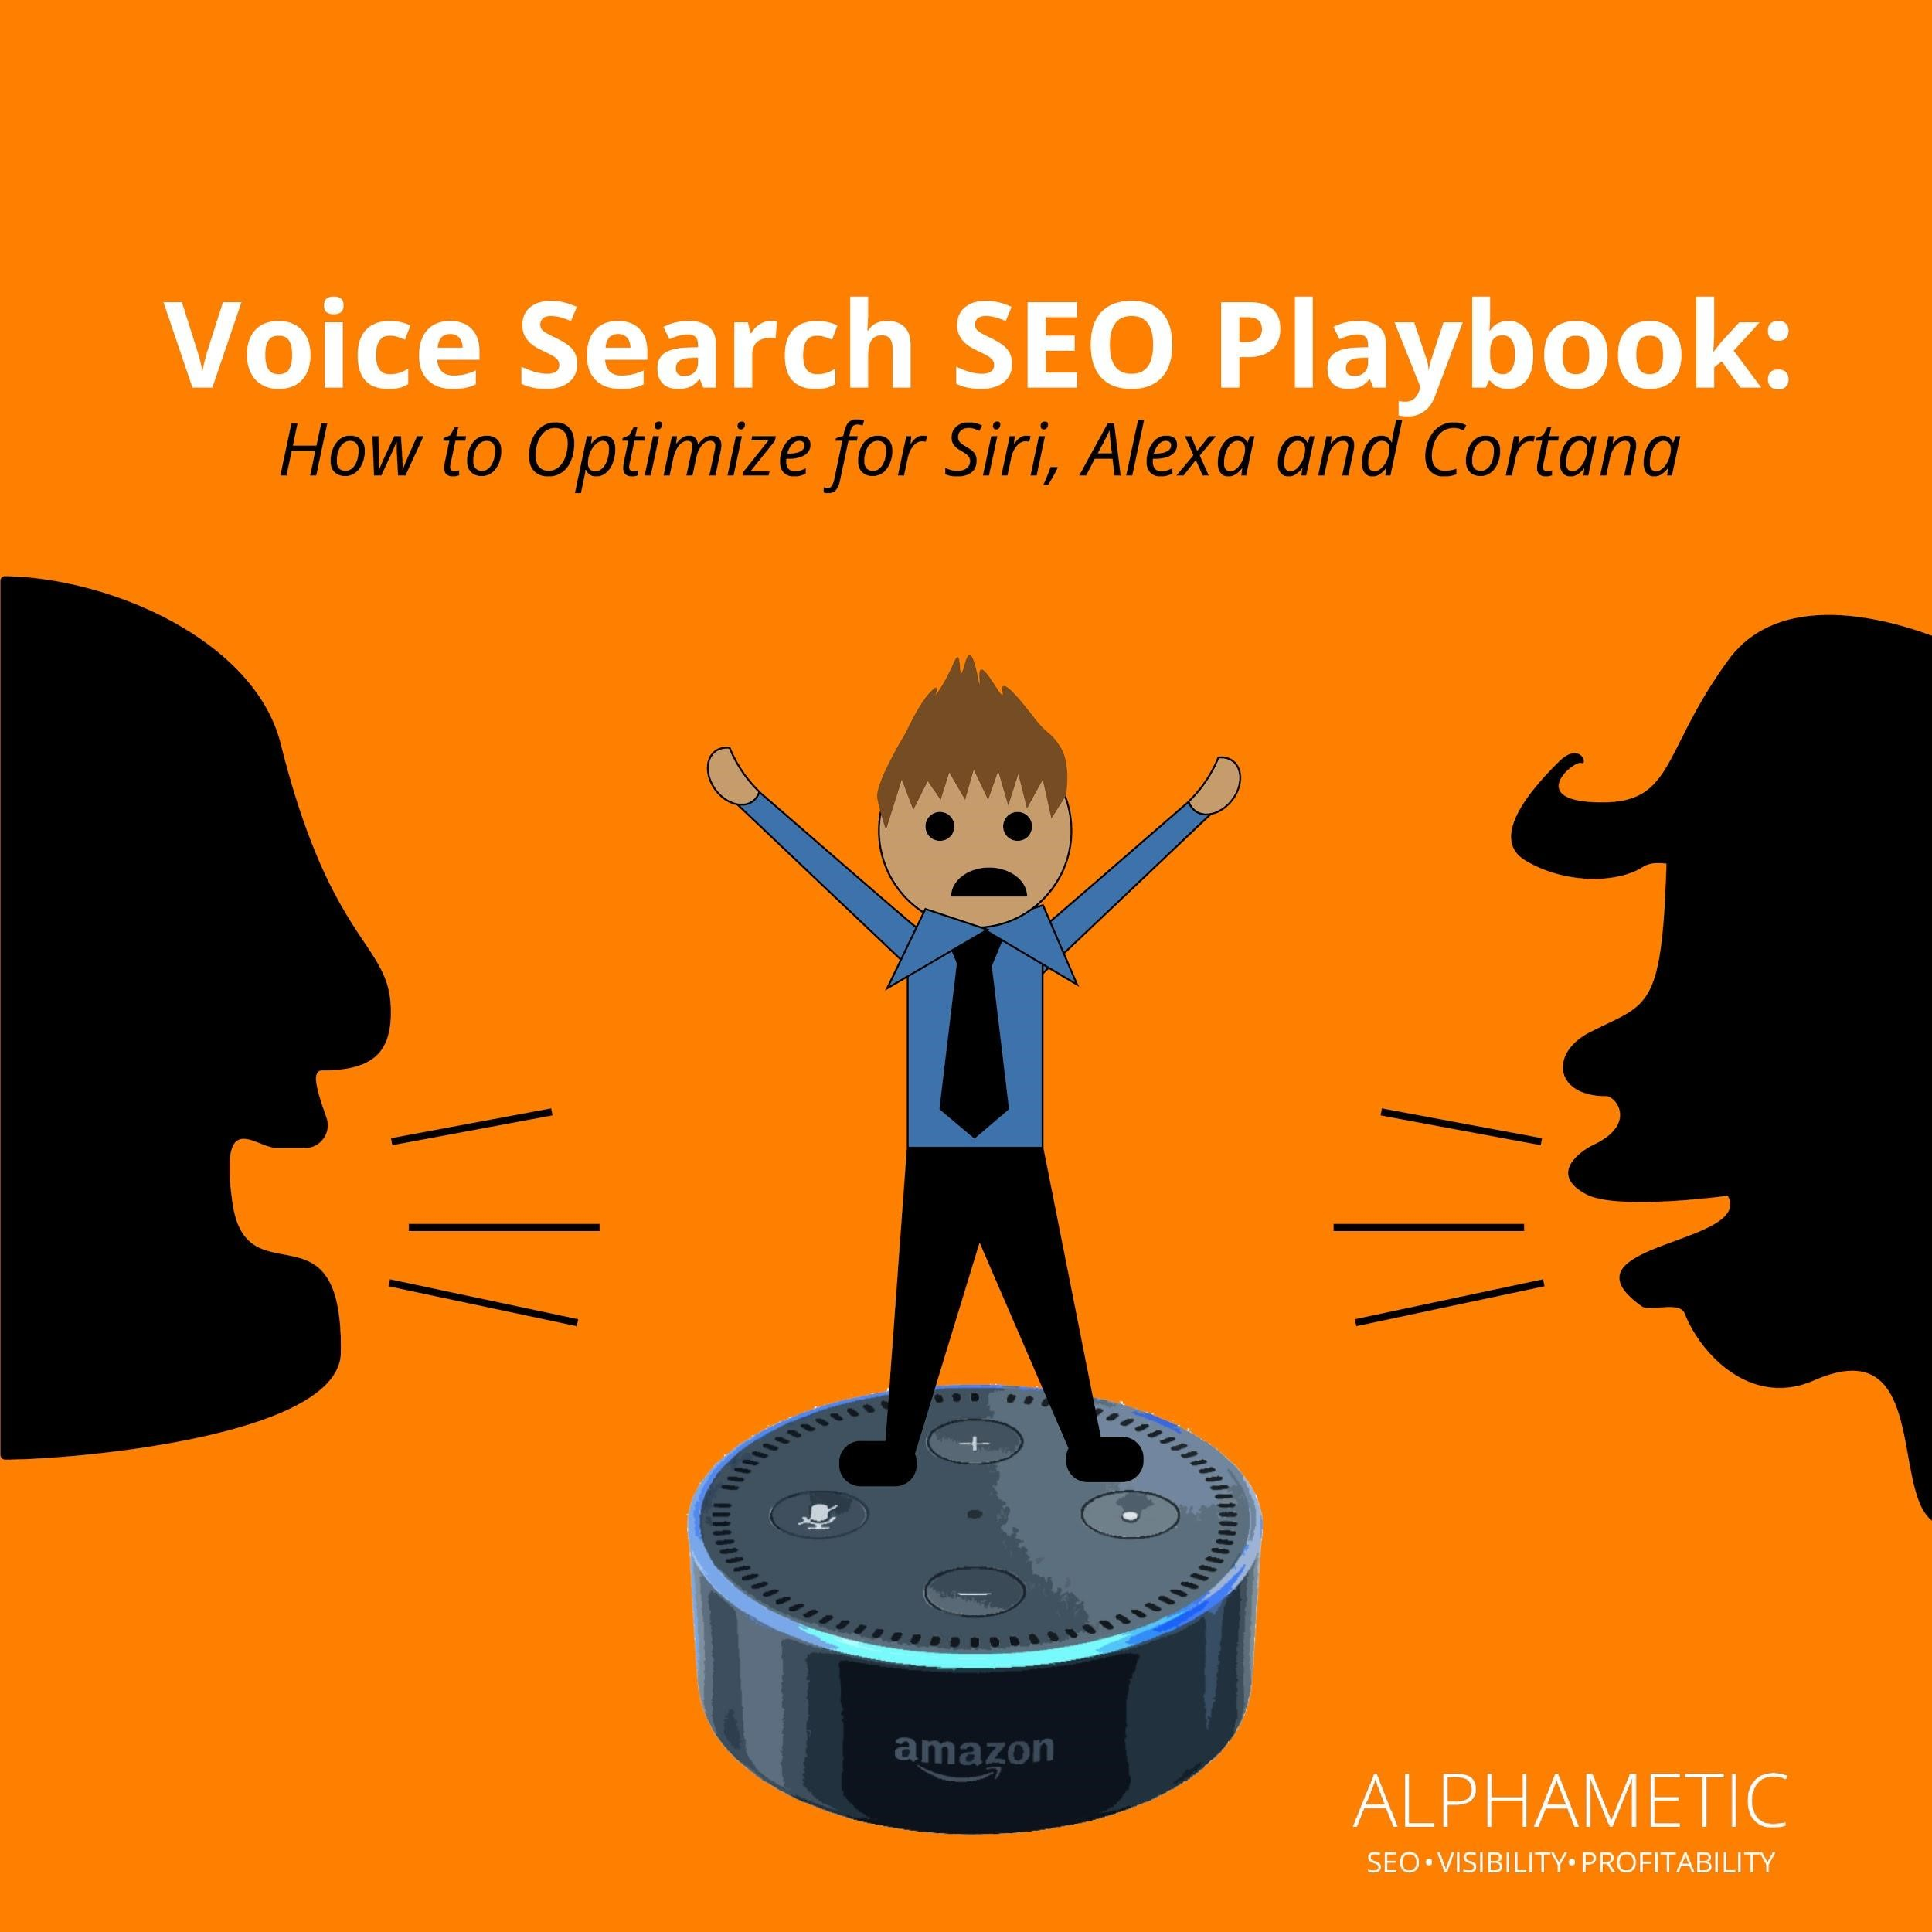 Voice Search SEO Playbook: How to Optimize for Siri, Alexa and Cortana